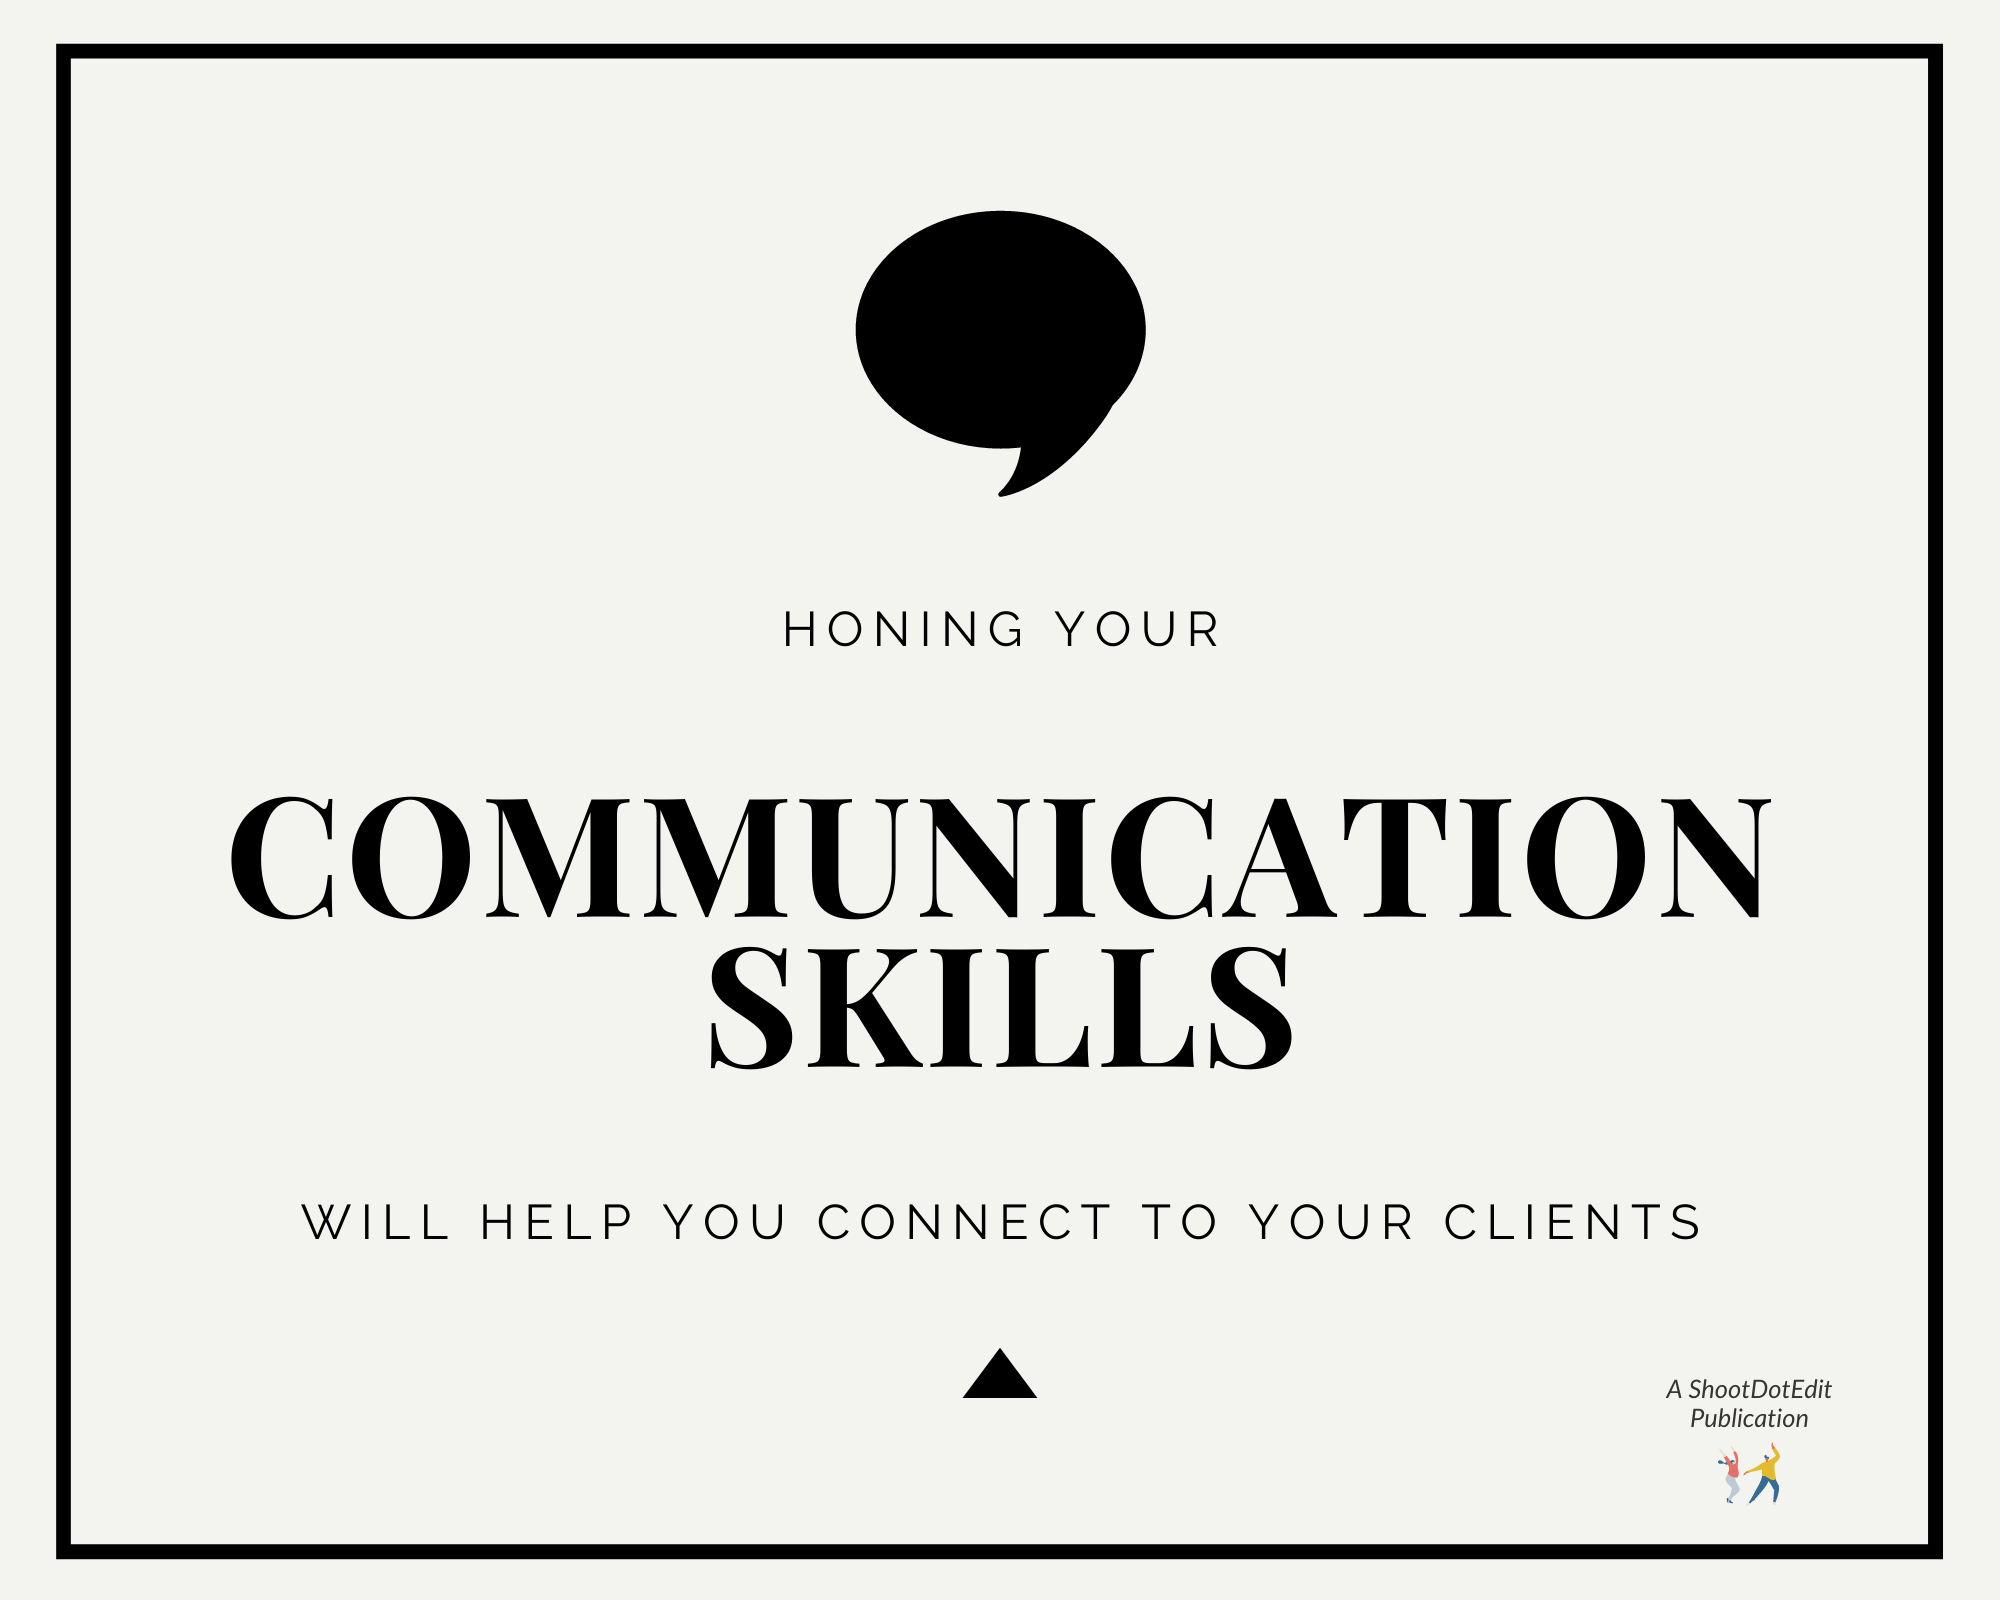 Infographic stating honing your communication skills will help you connect to your clients